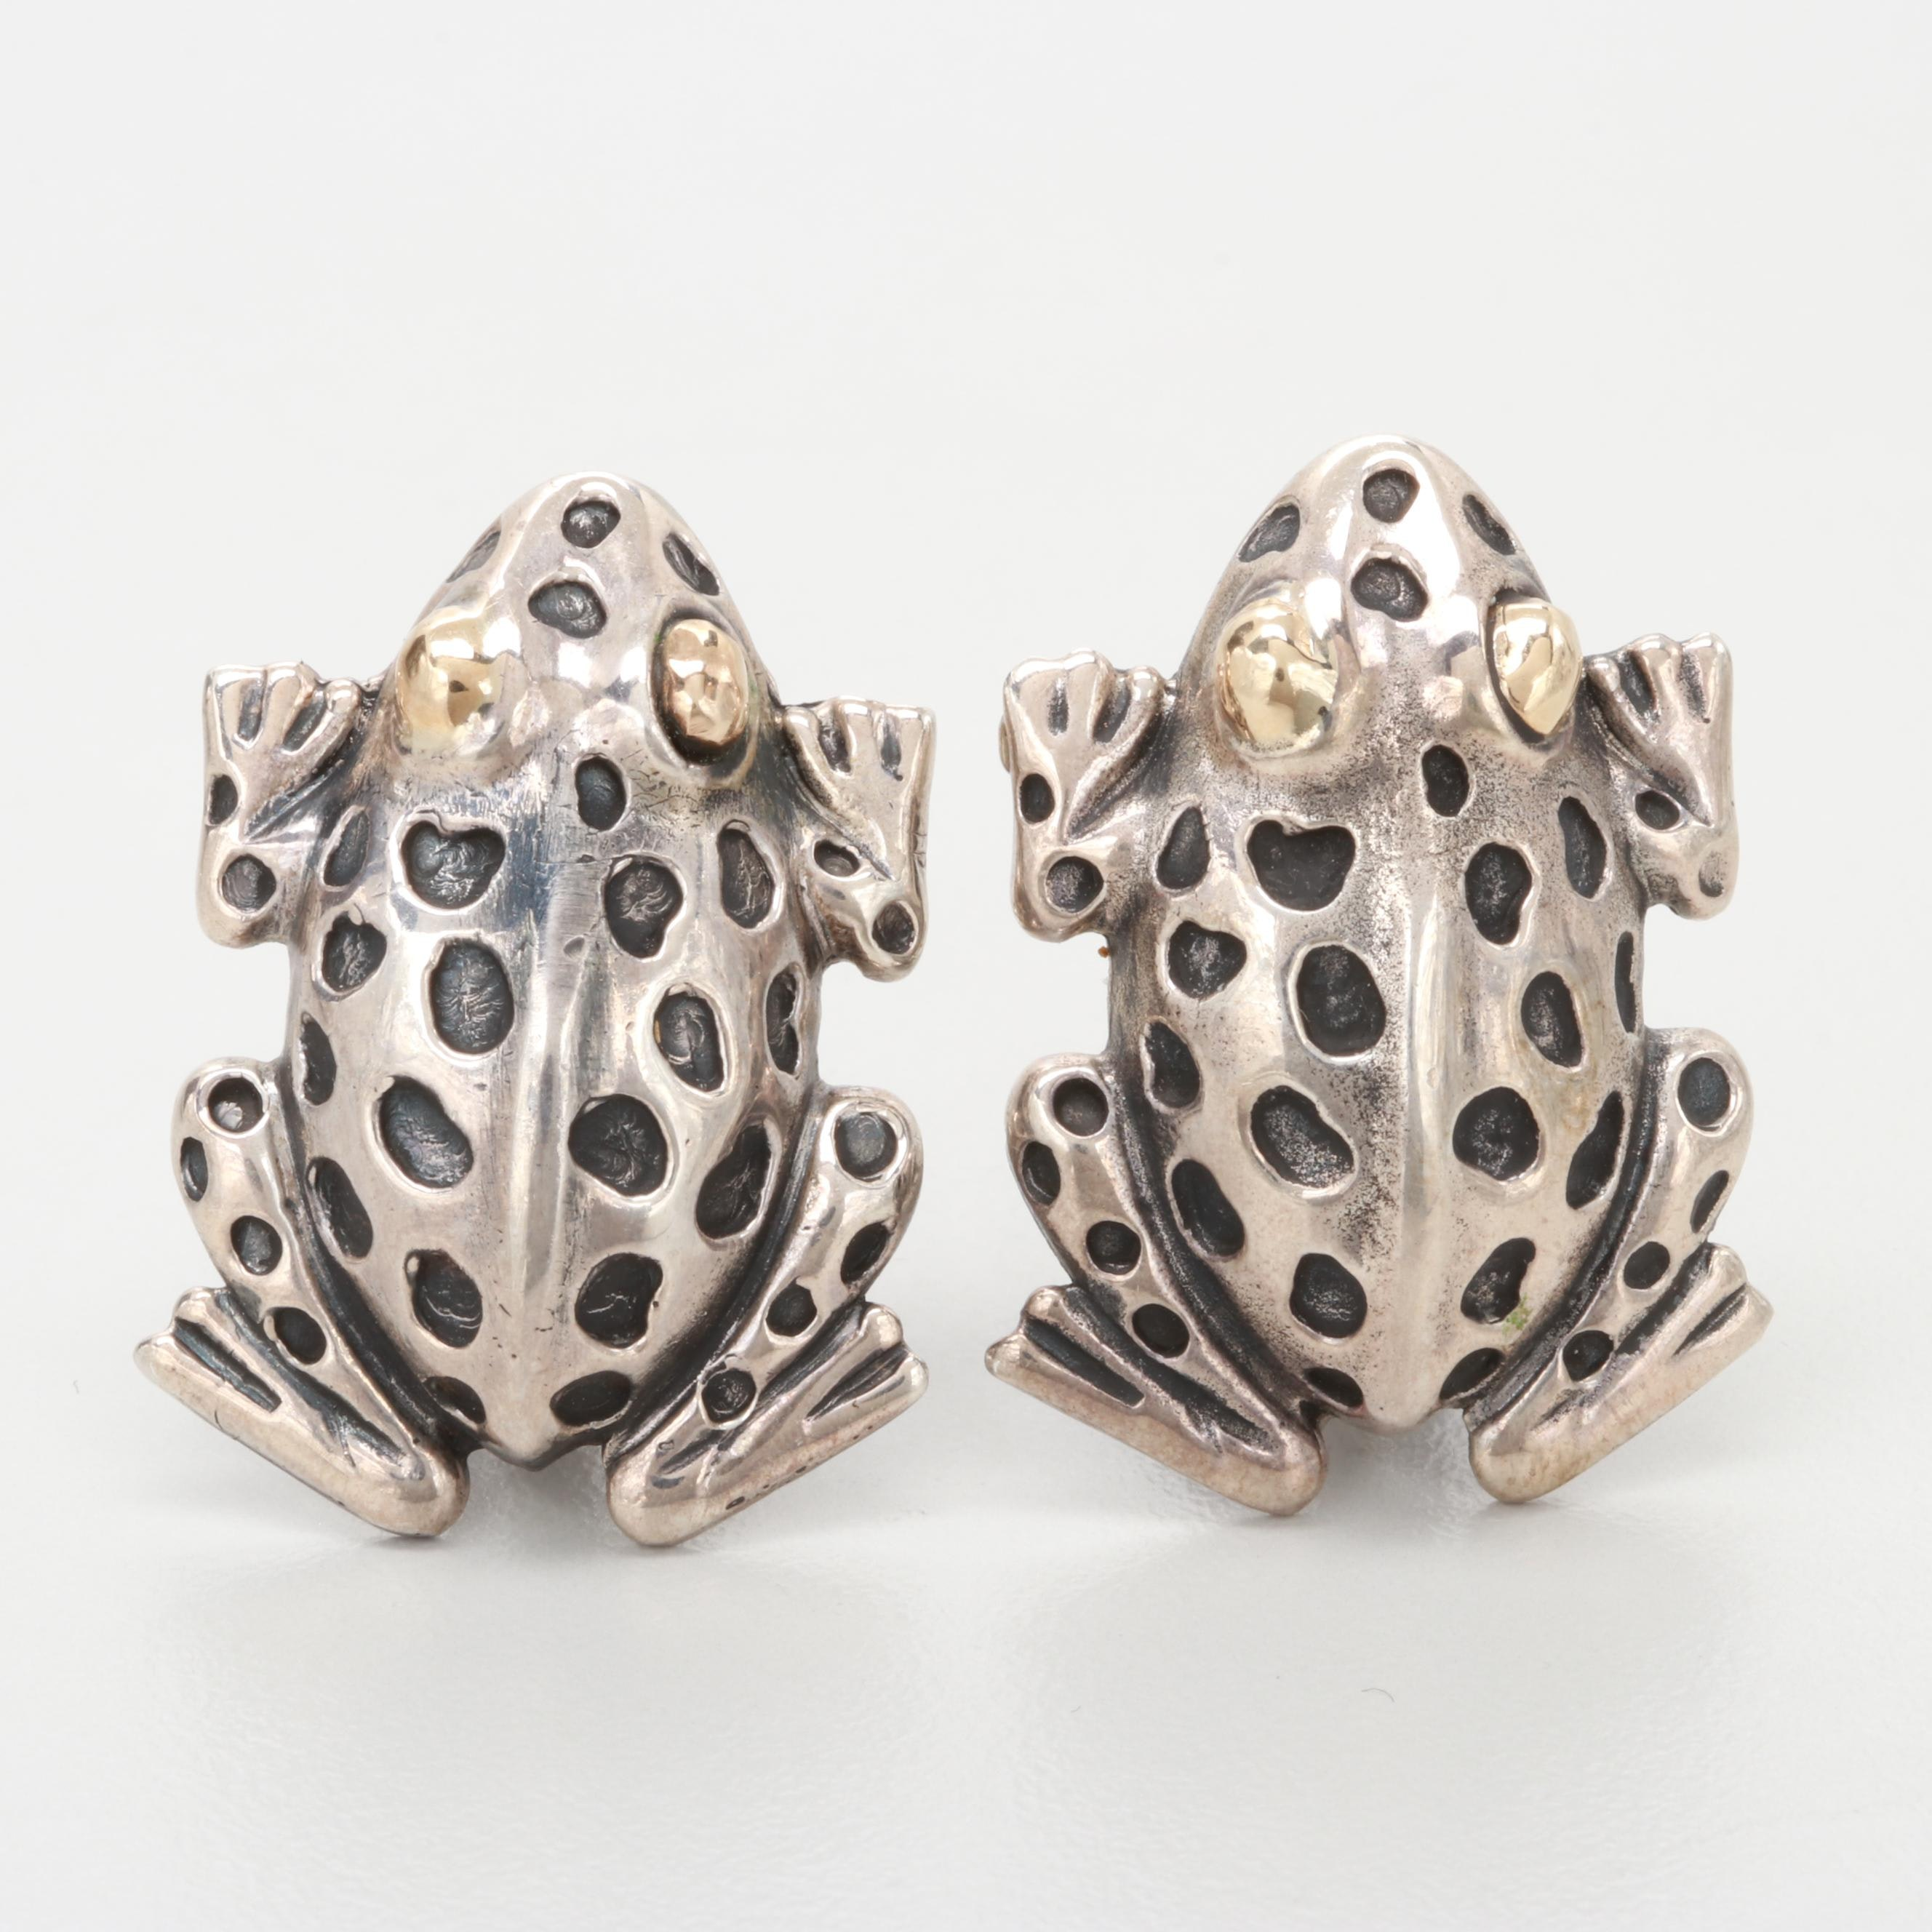 Dian Malouf Sterling Silver Frog Clip on Earrings with 14K Yellow Gold Accents